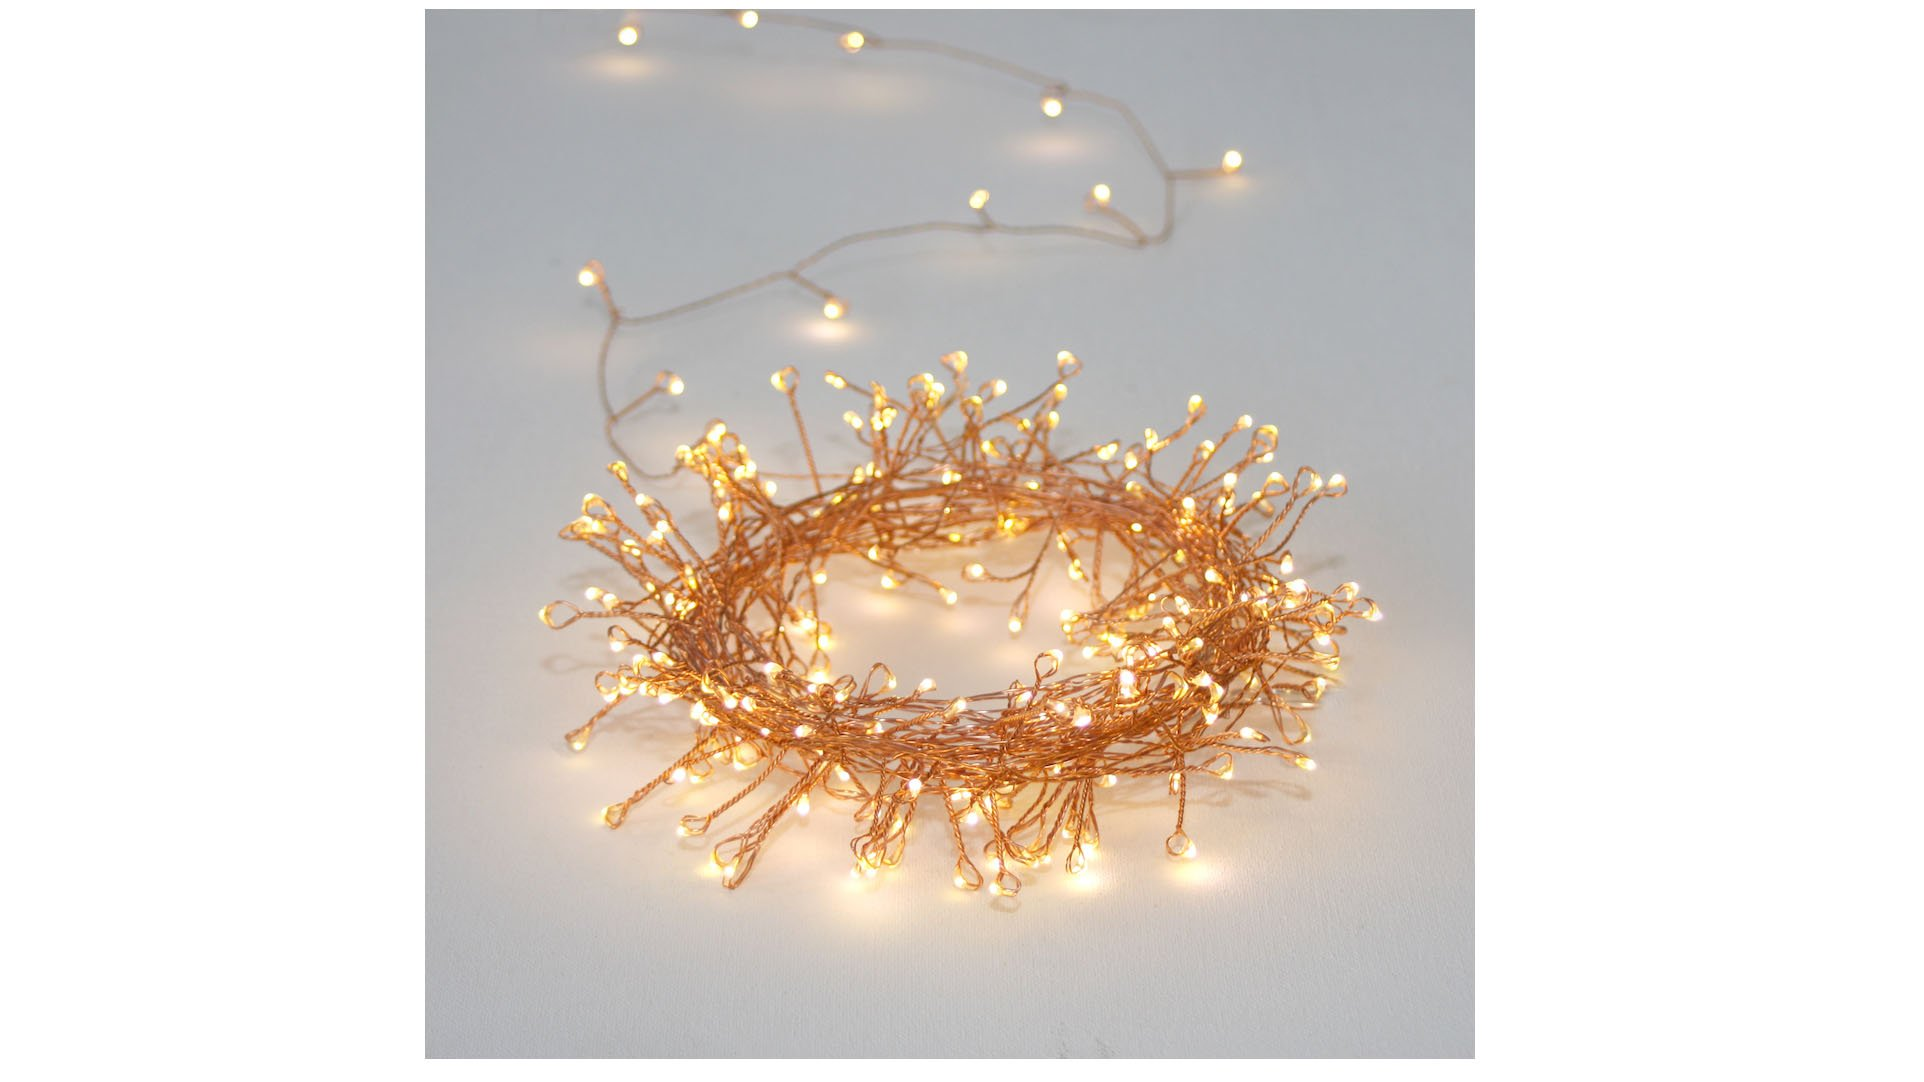 Best Christmas Tree lights: Add a festive flourish to your tree from as little as £5